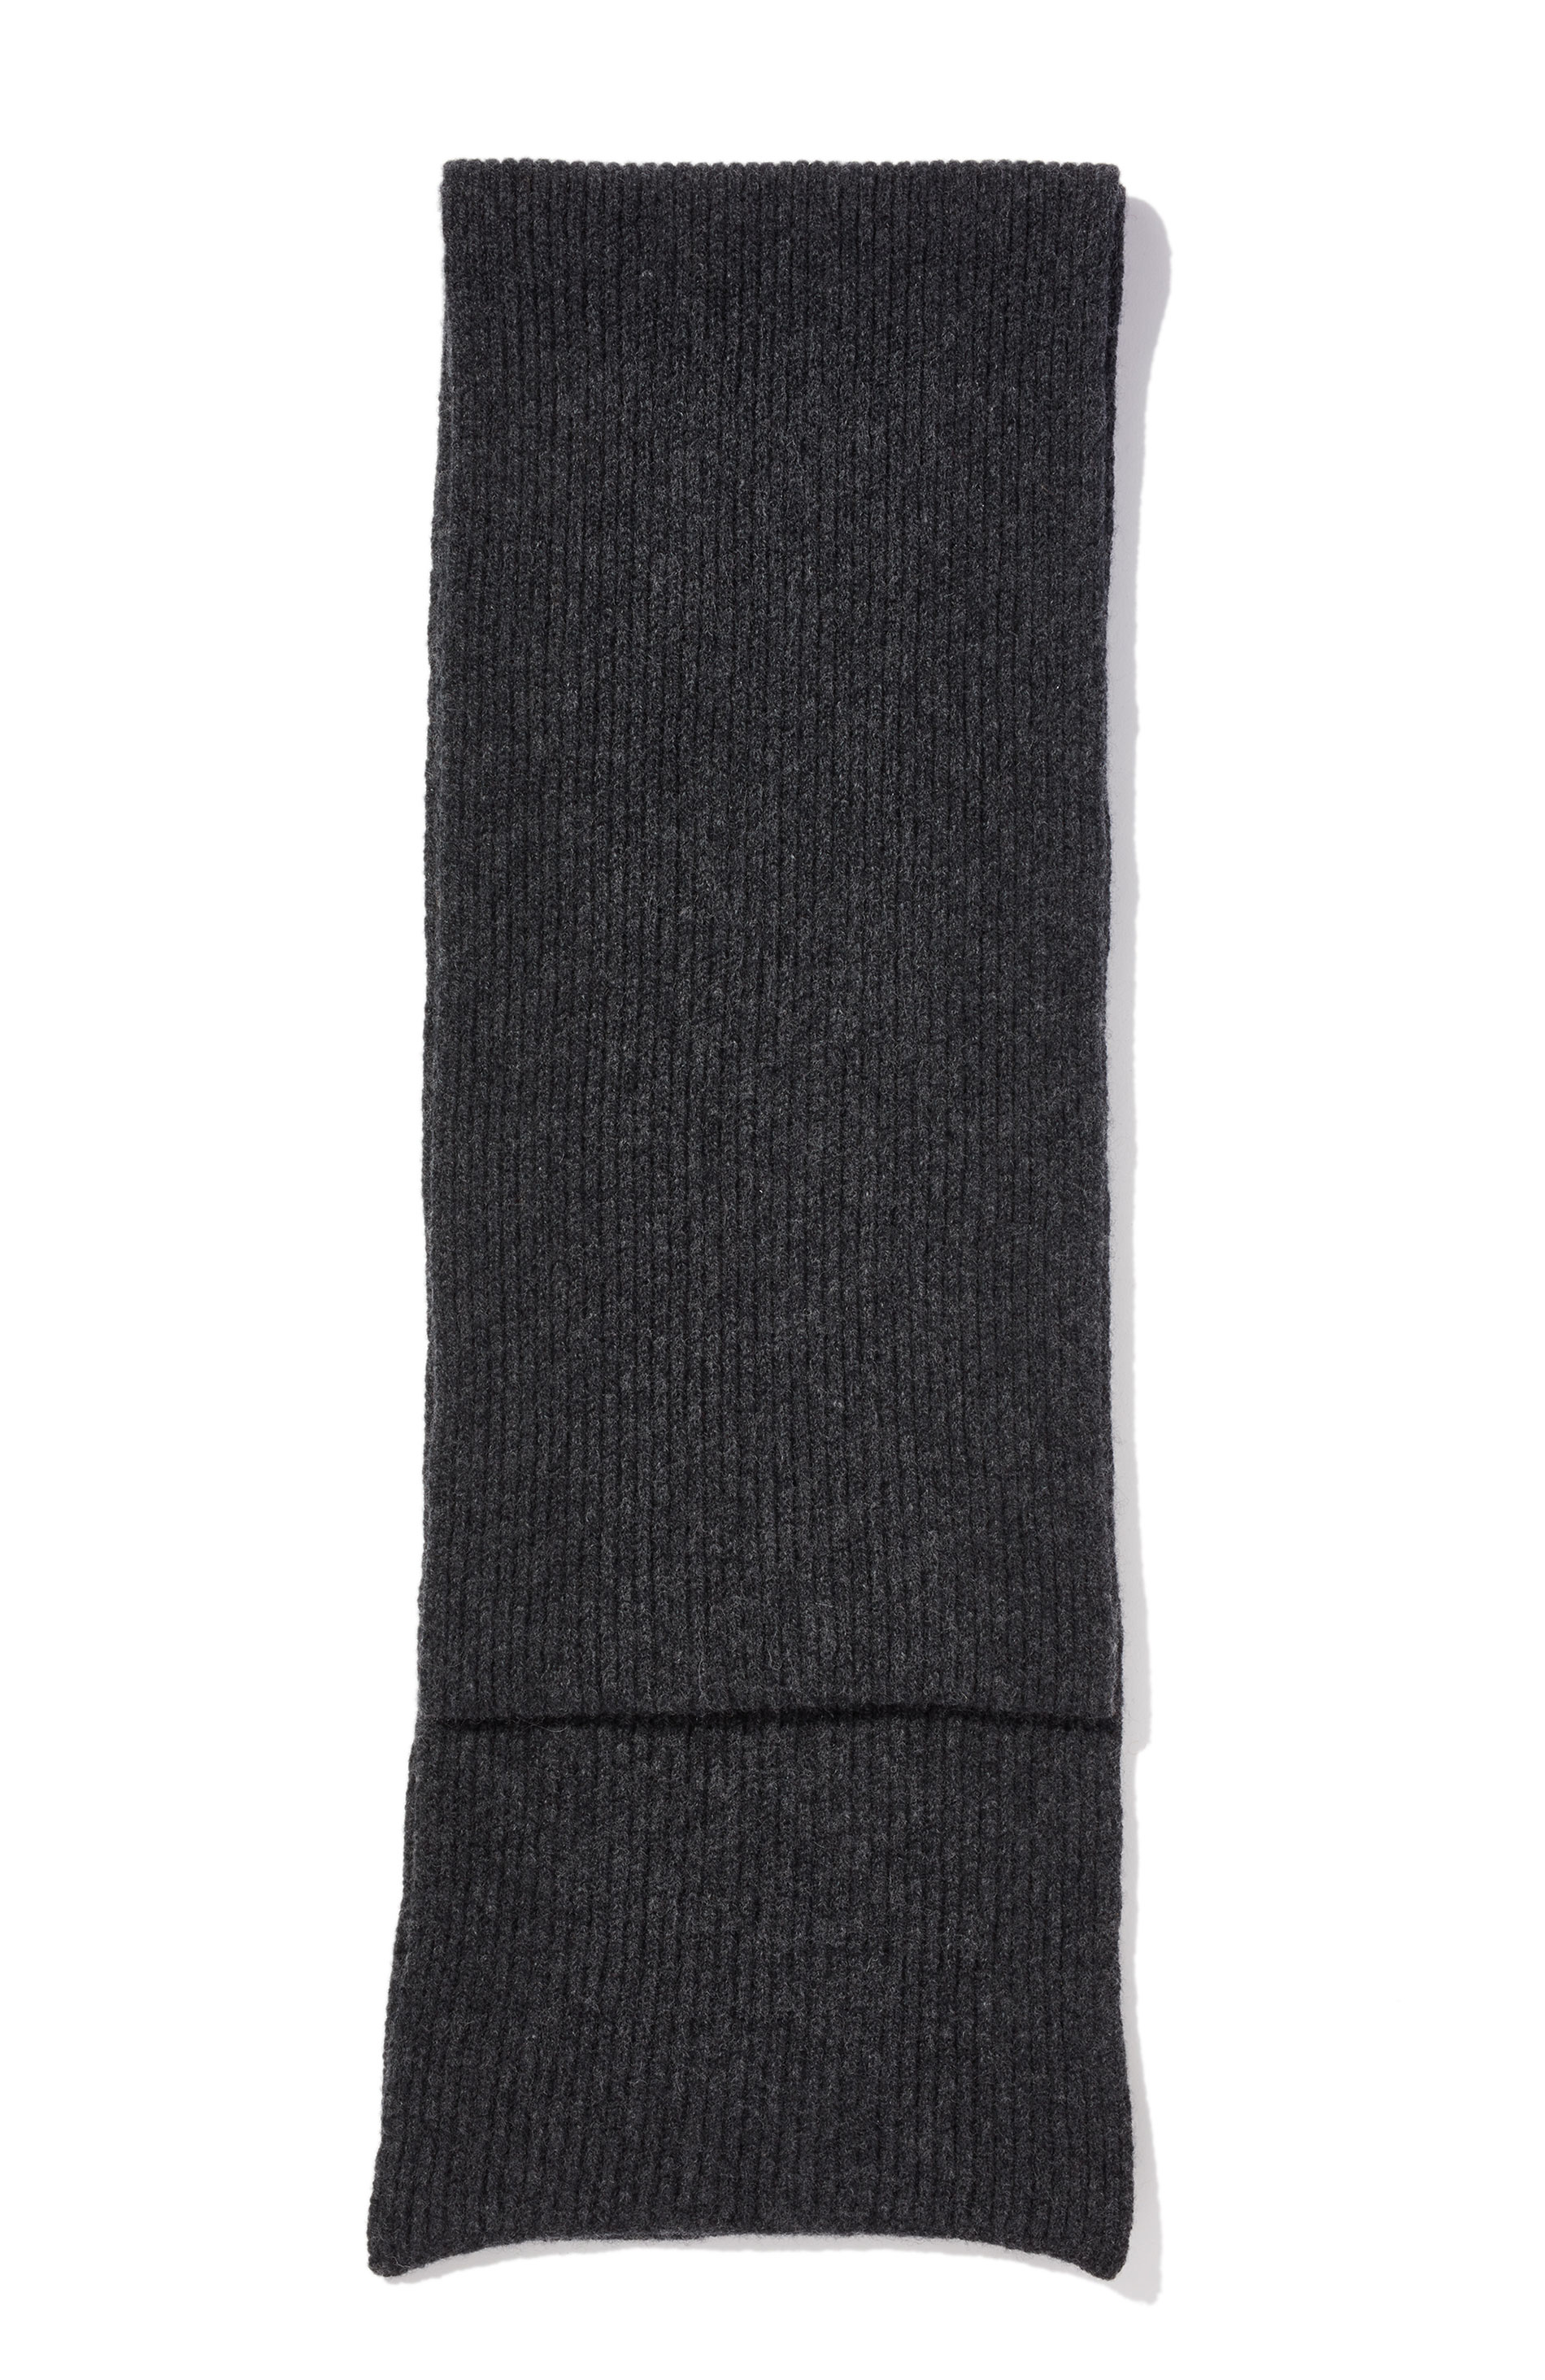 YMC Royal Rib Scarf (charcoal)